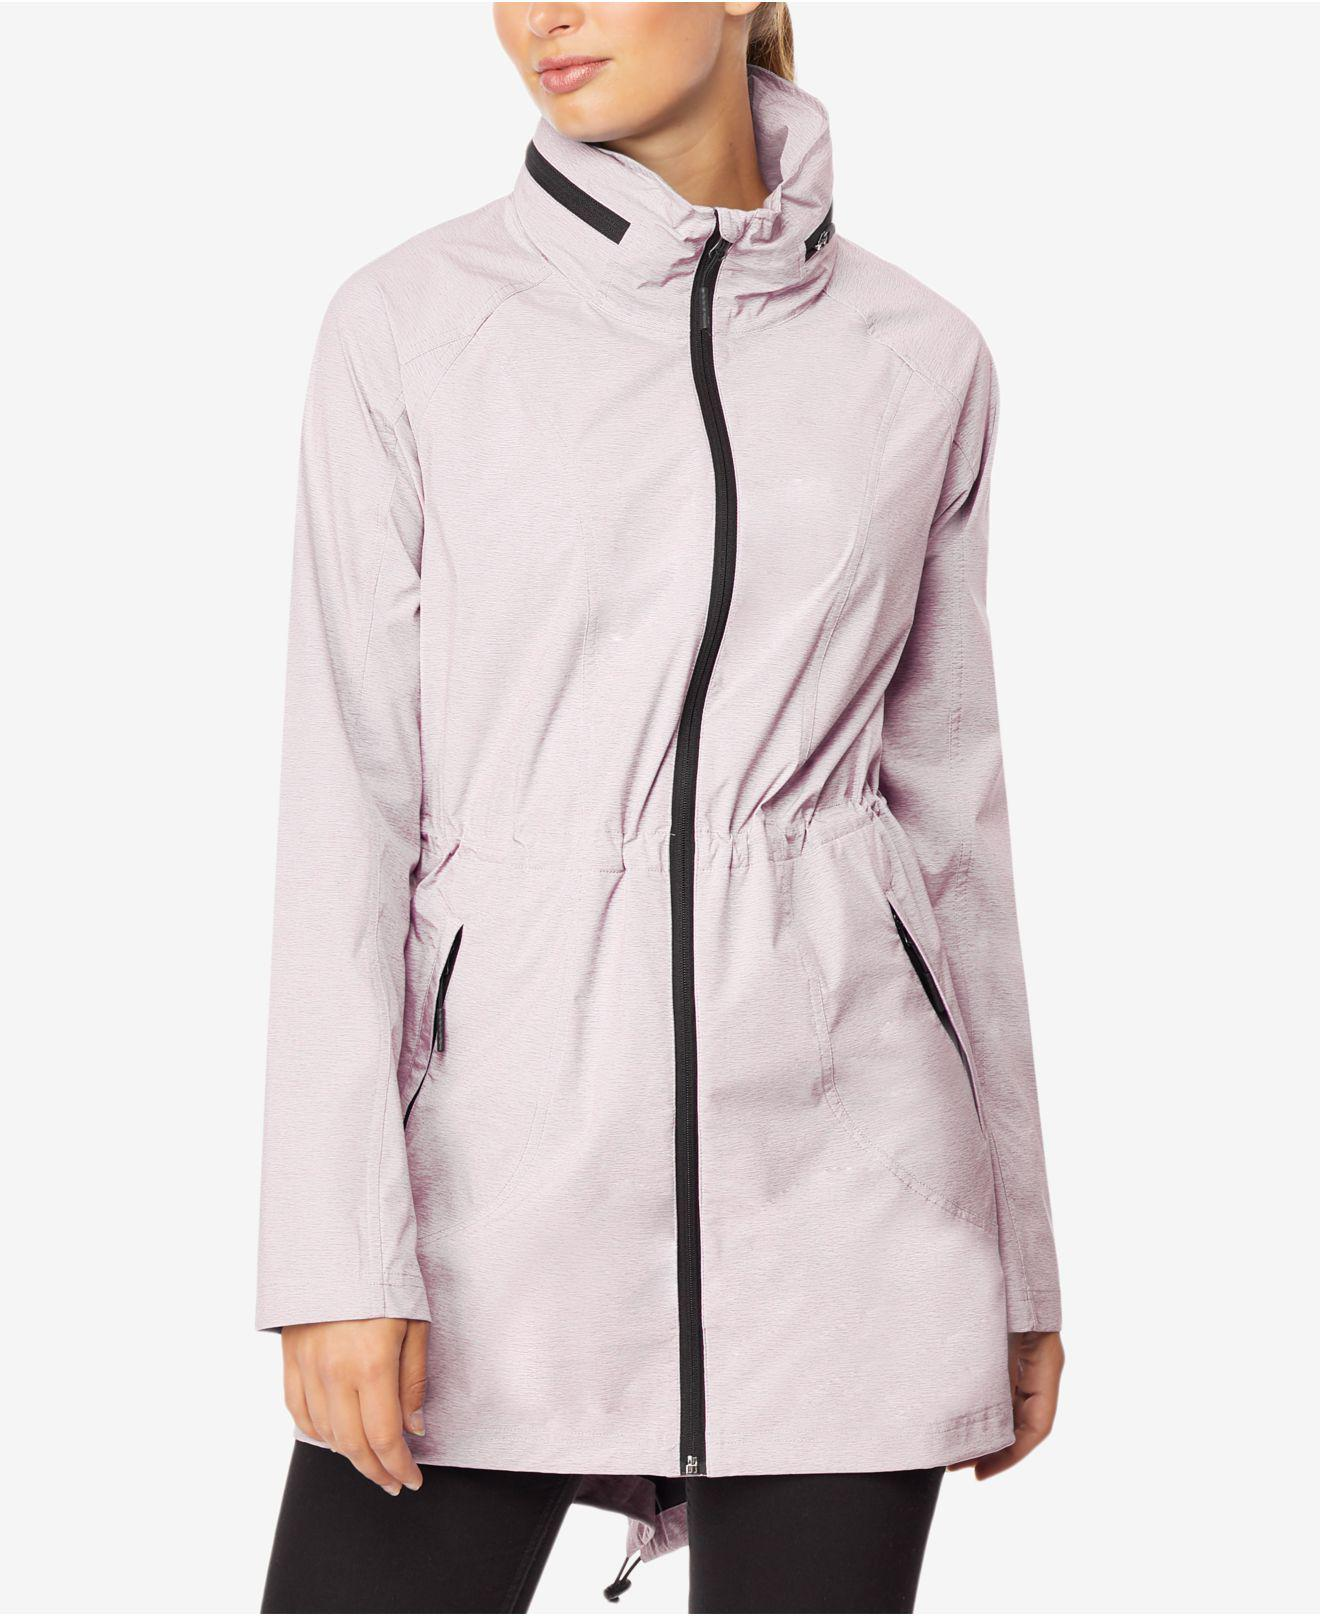 cc1885666a43c Lyst - 32 Degrees Hooded Cinched-waist Anorak Raincoat in Pink